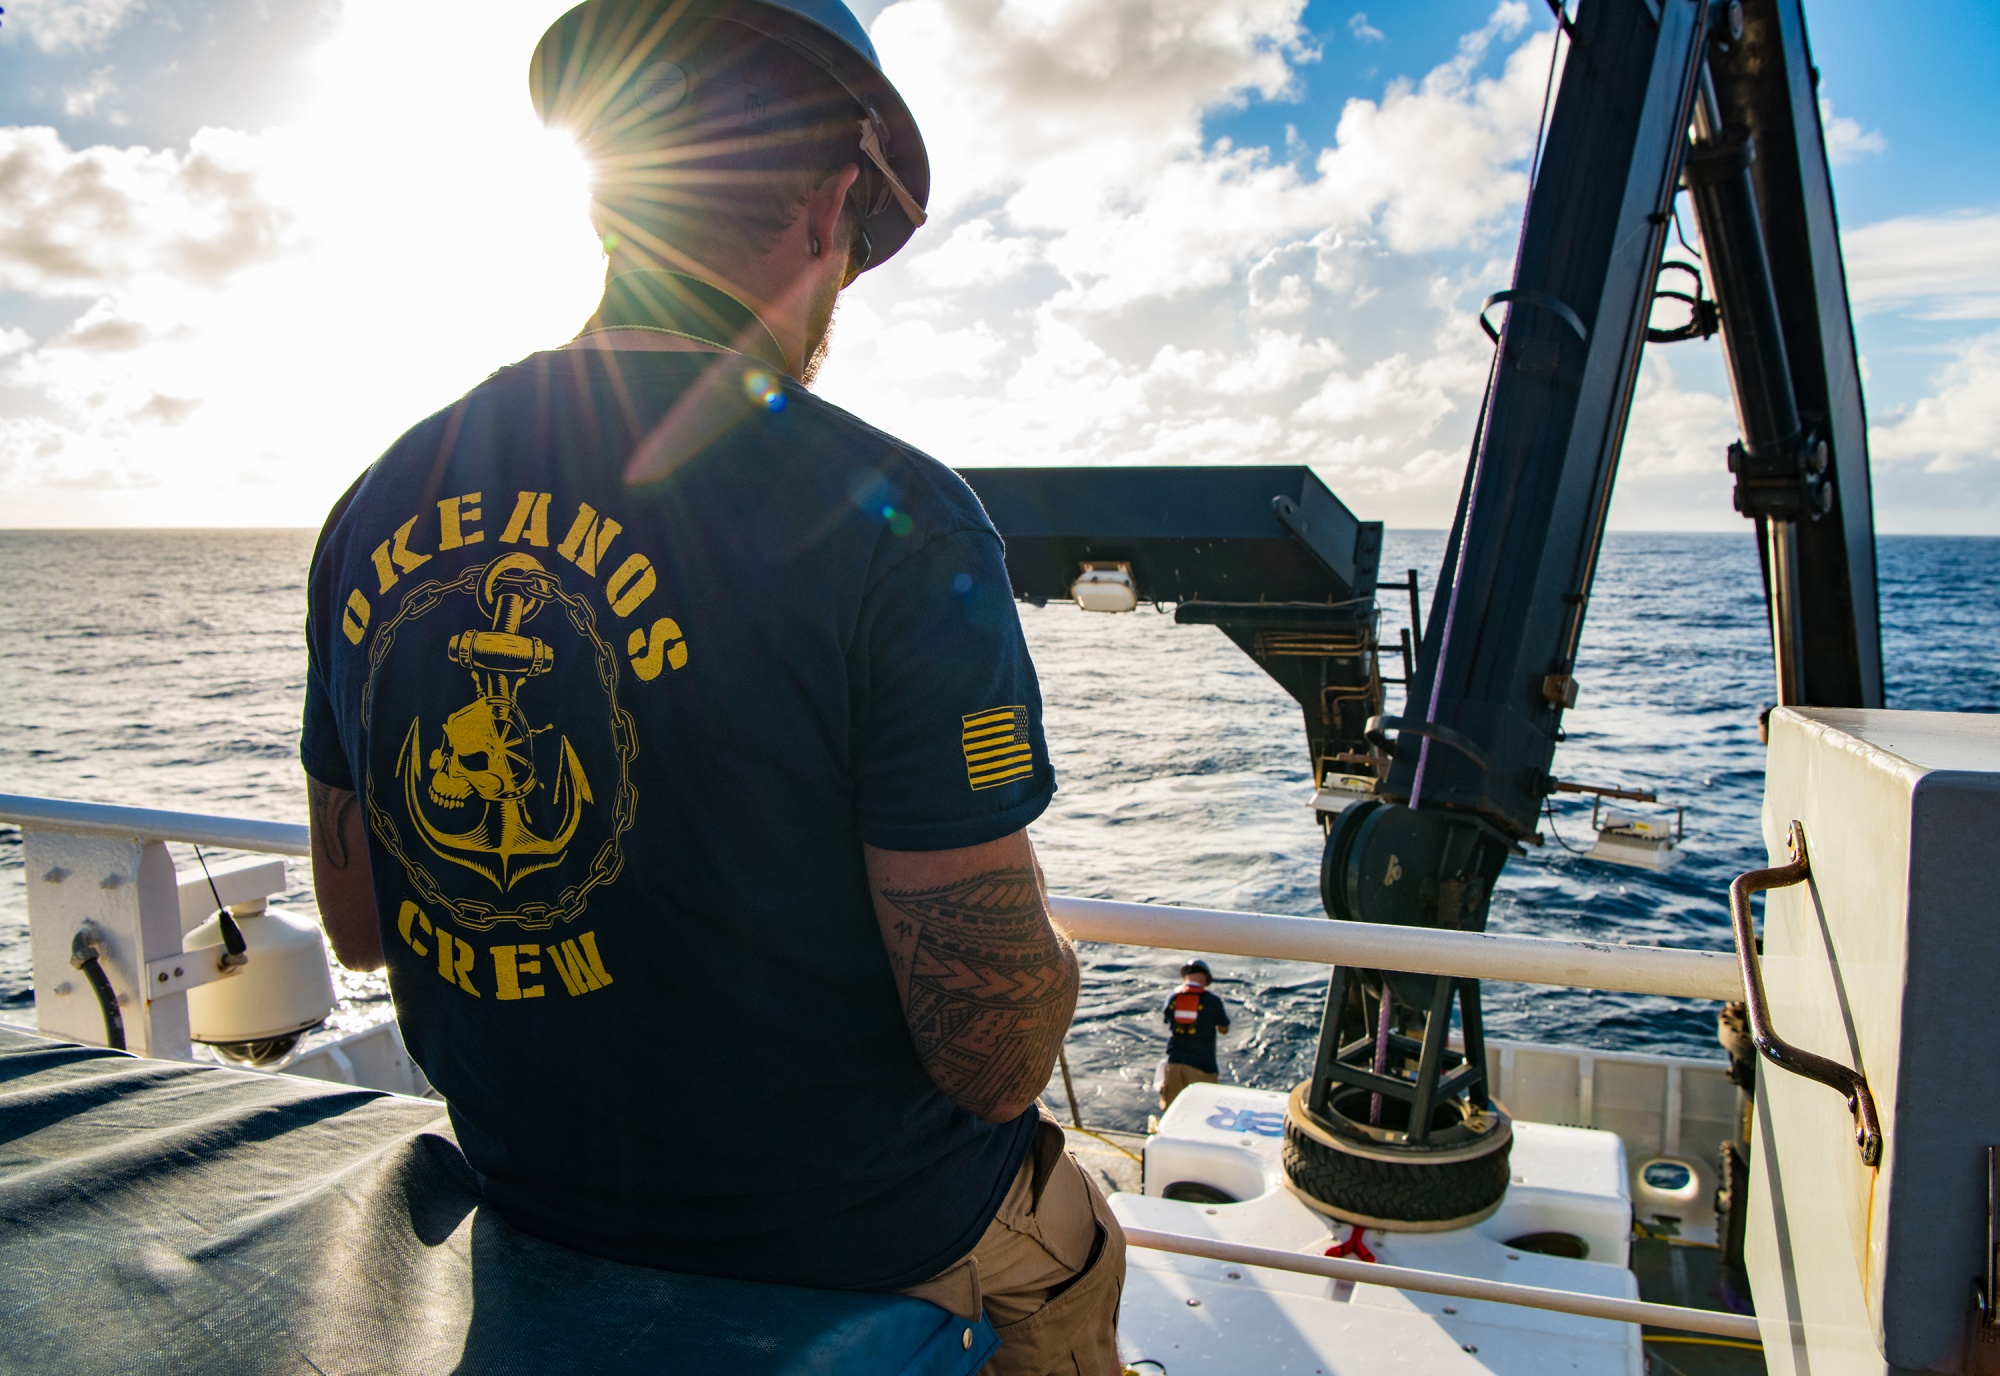 rov-recovery-hires.jpg